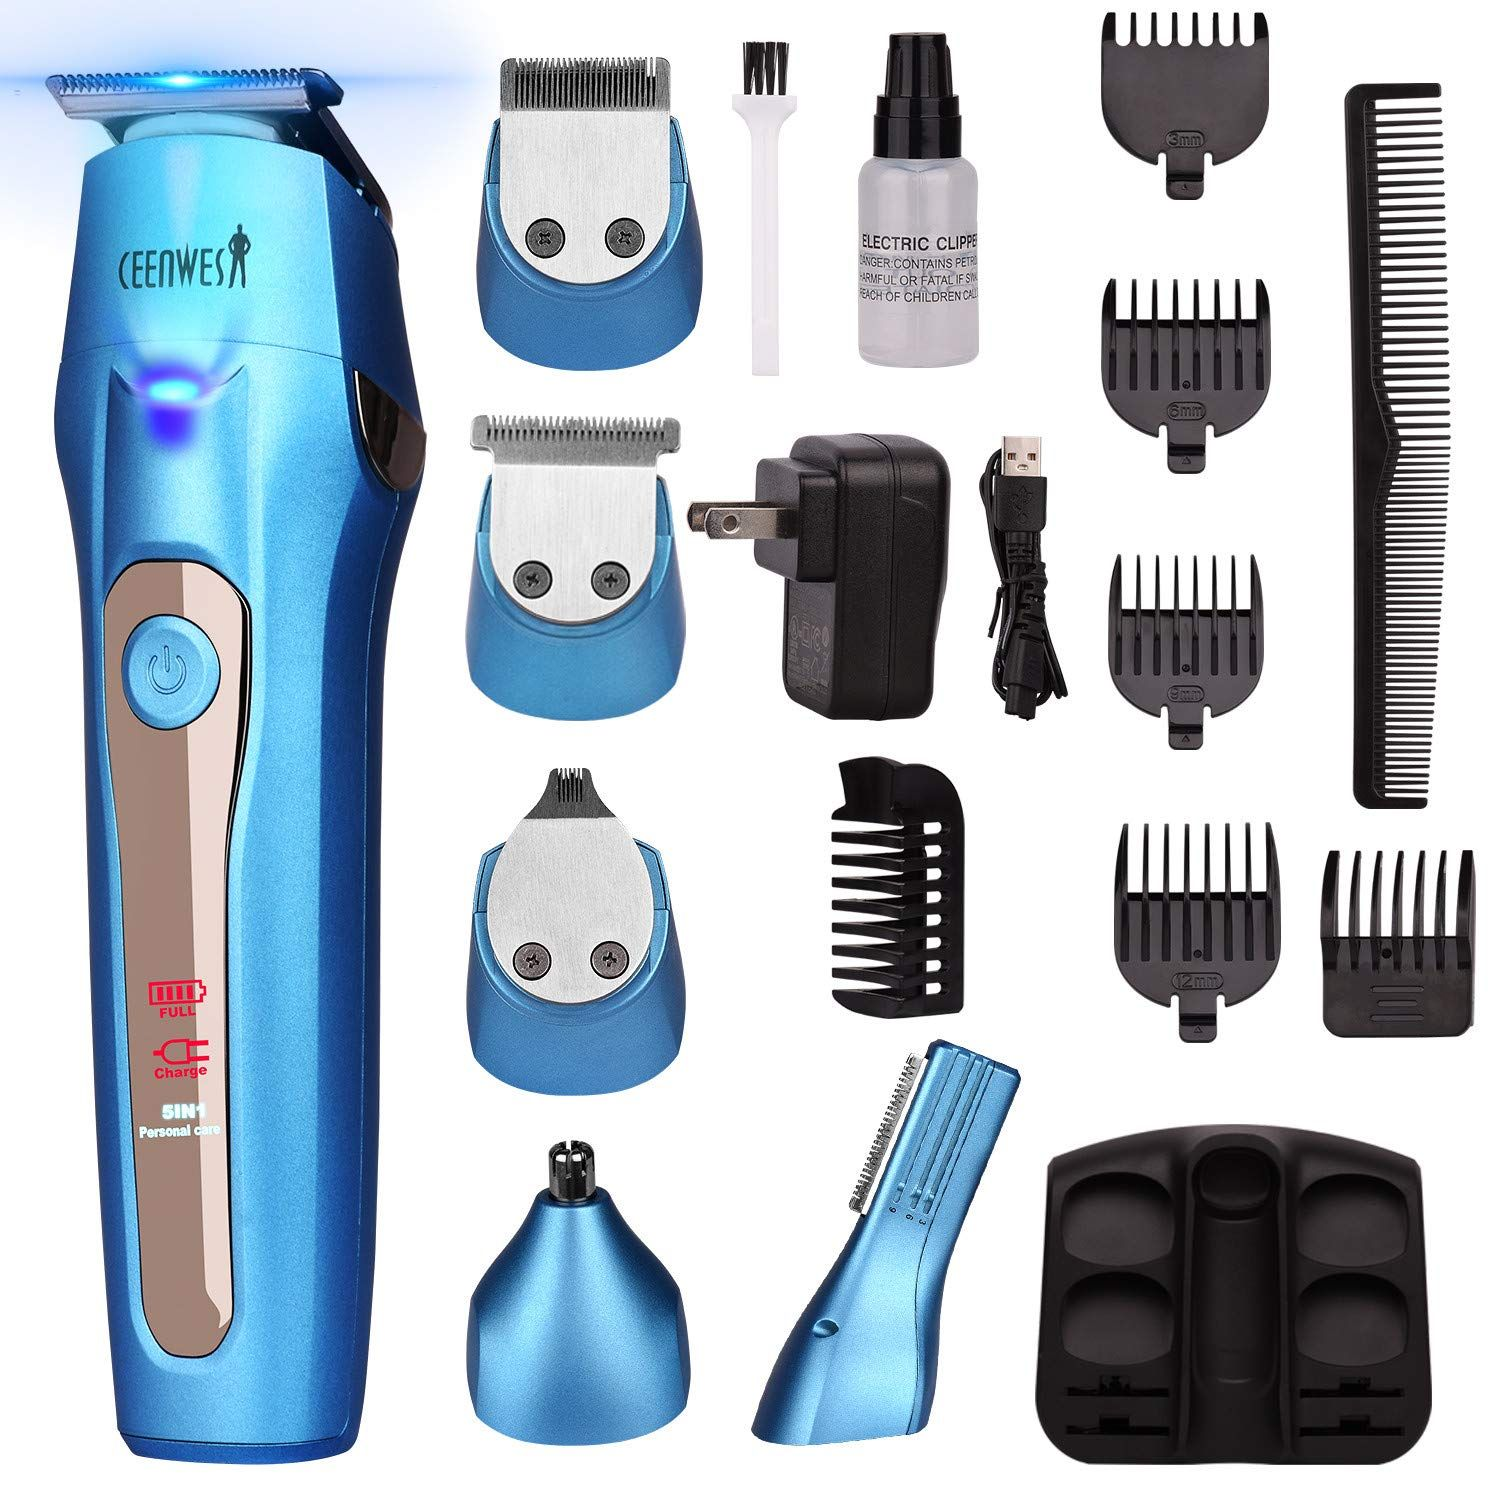 Ceenwes Cool 5 In 1 Mens Grooming Kit Professional Beard